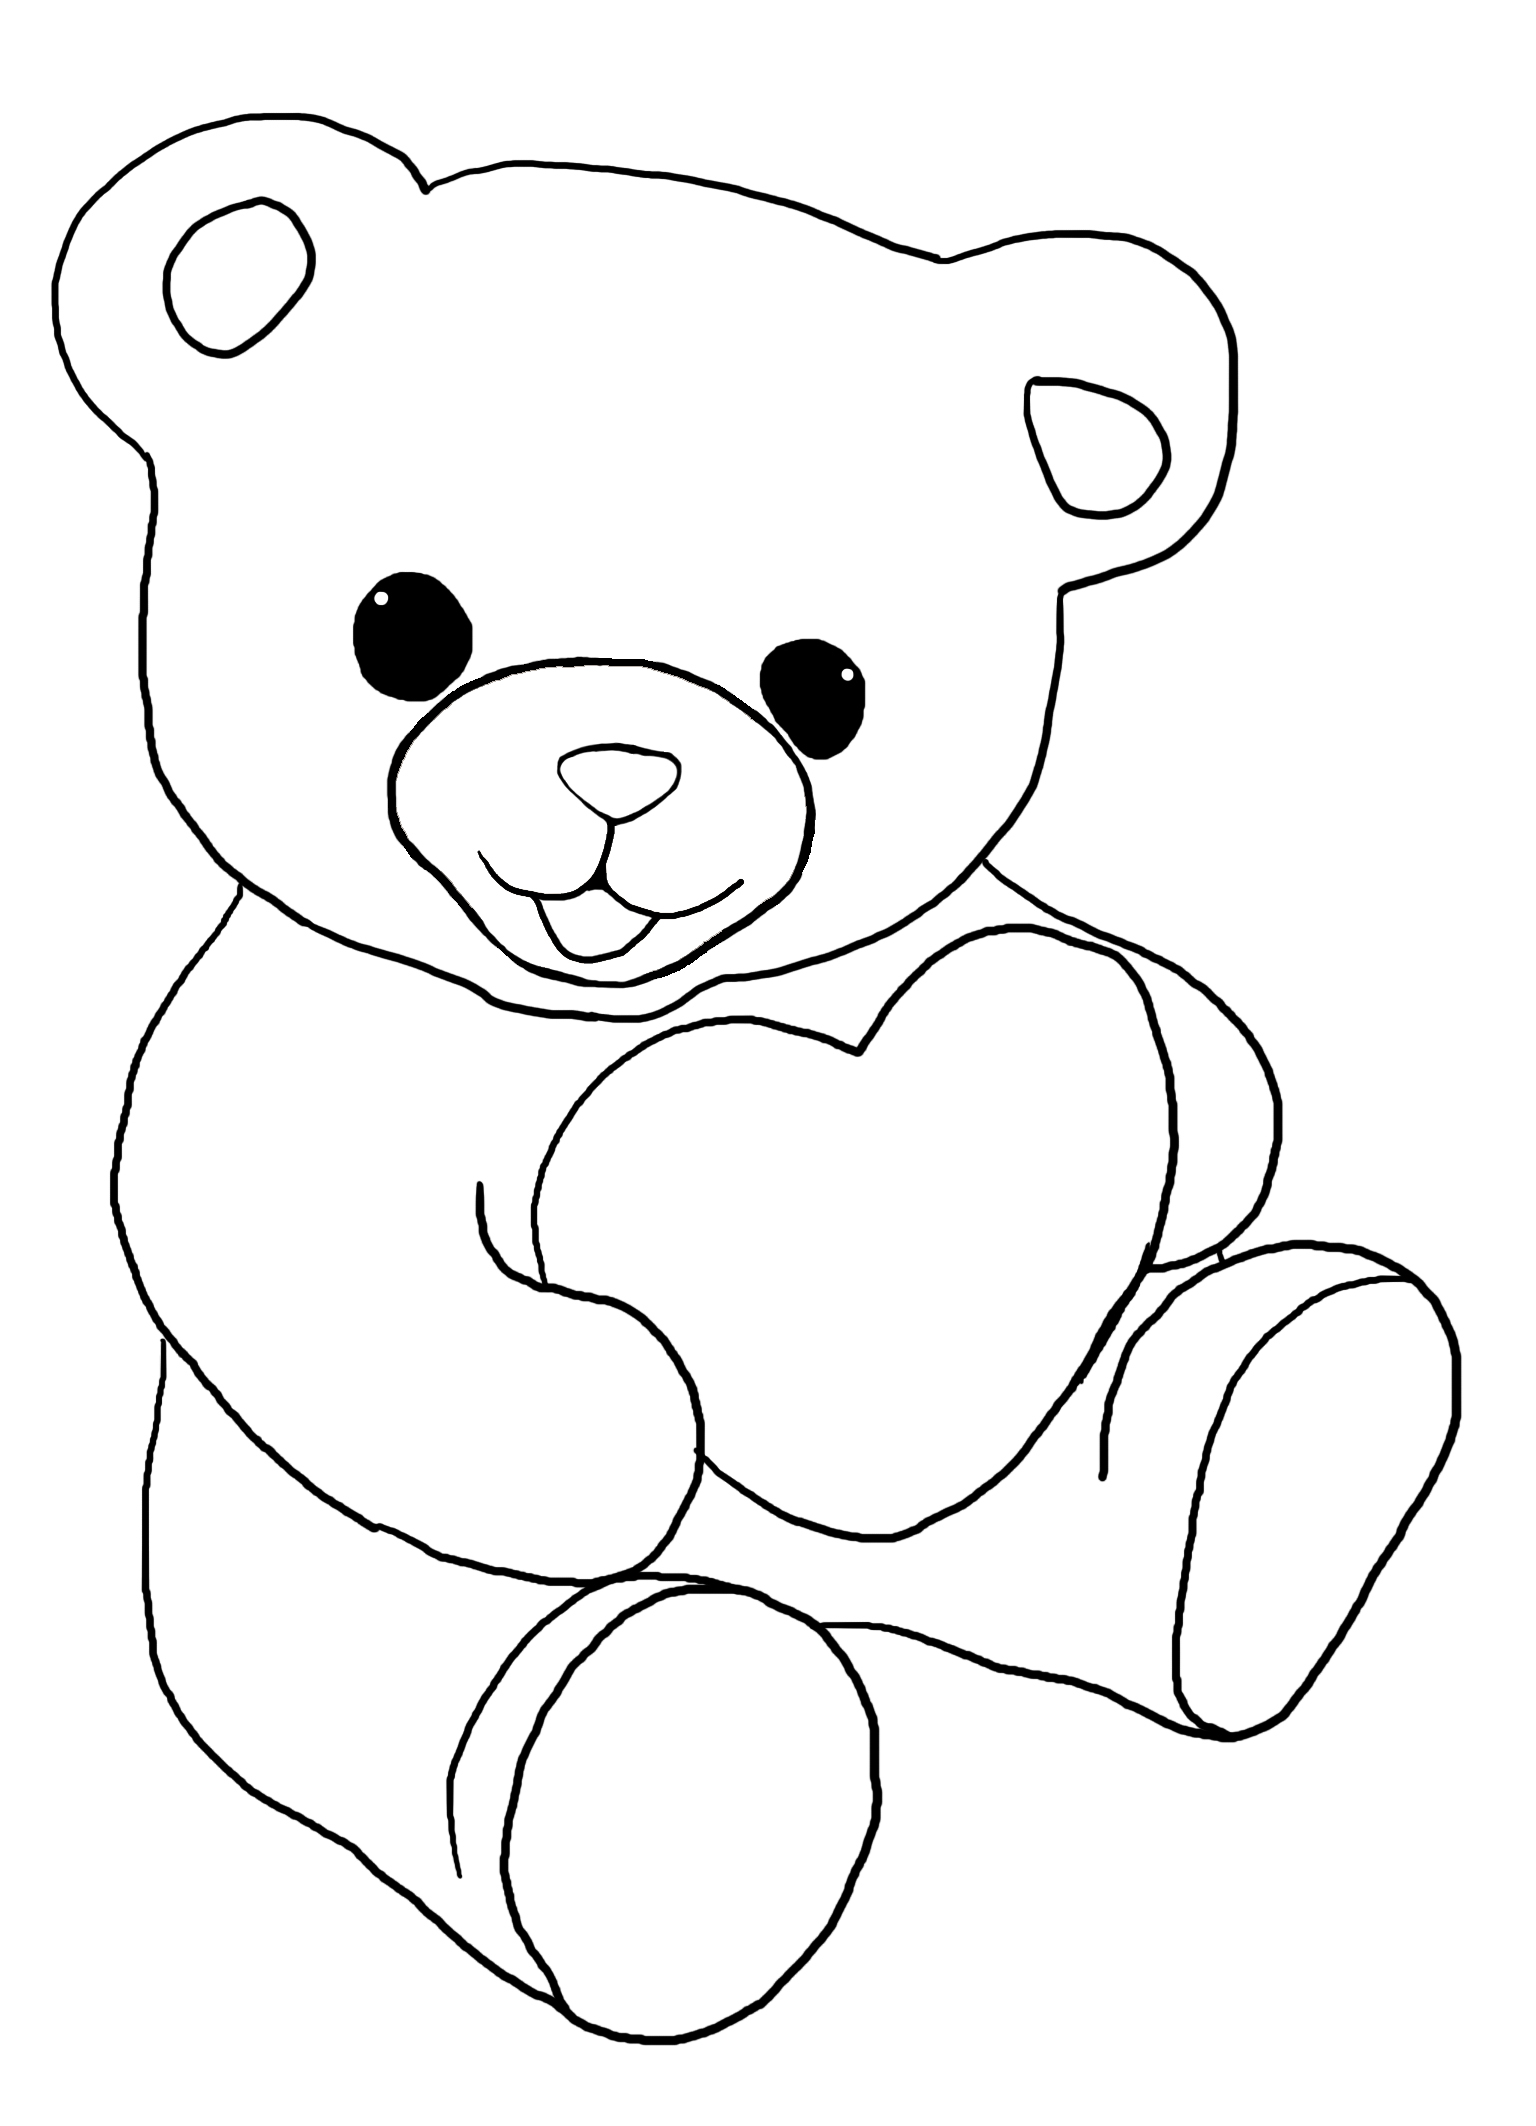 Teddy bear with a heart for coloring for kids